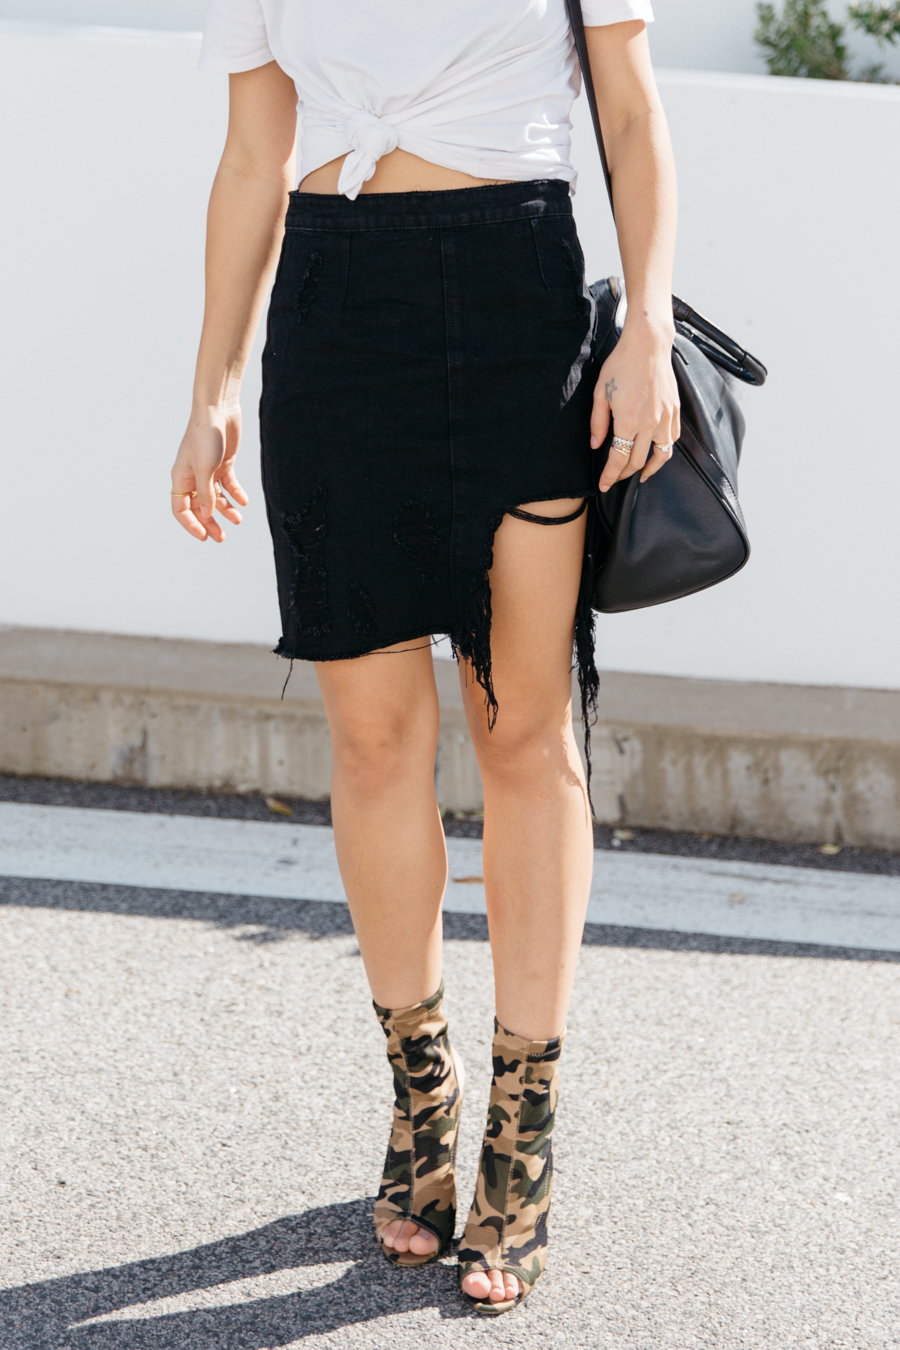 Black ripped demin skirt outfit.